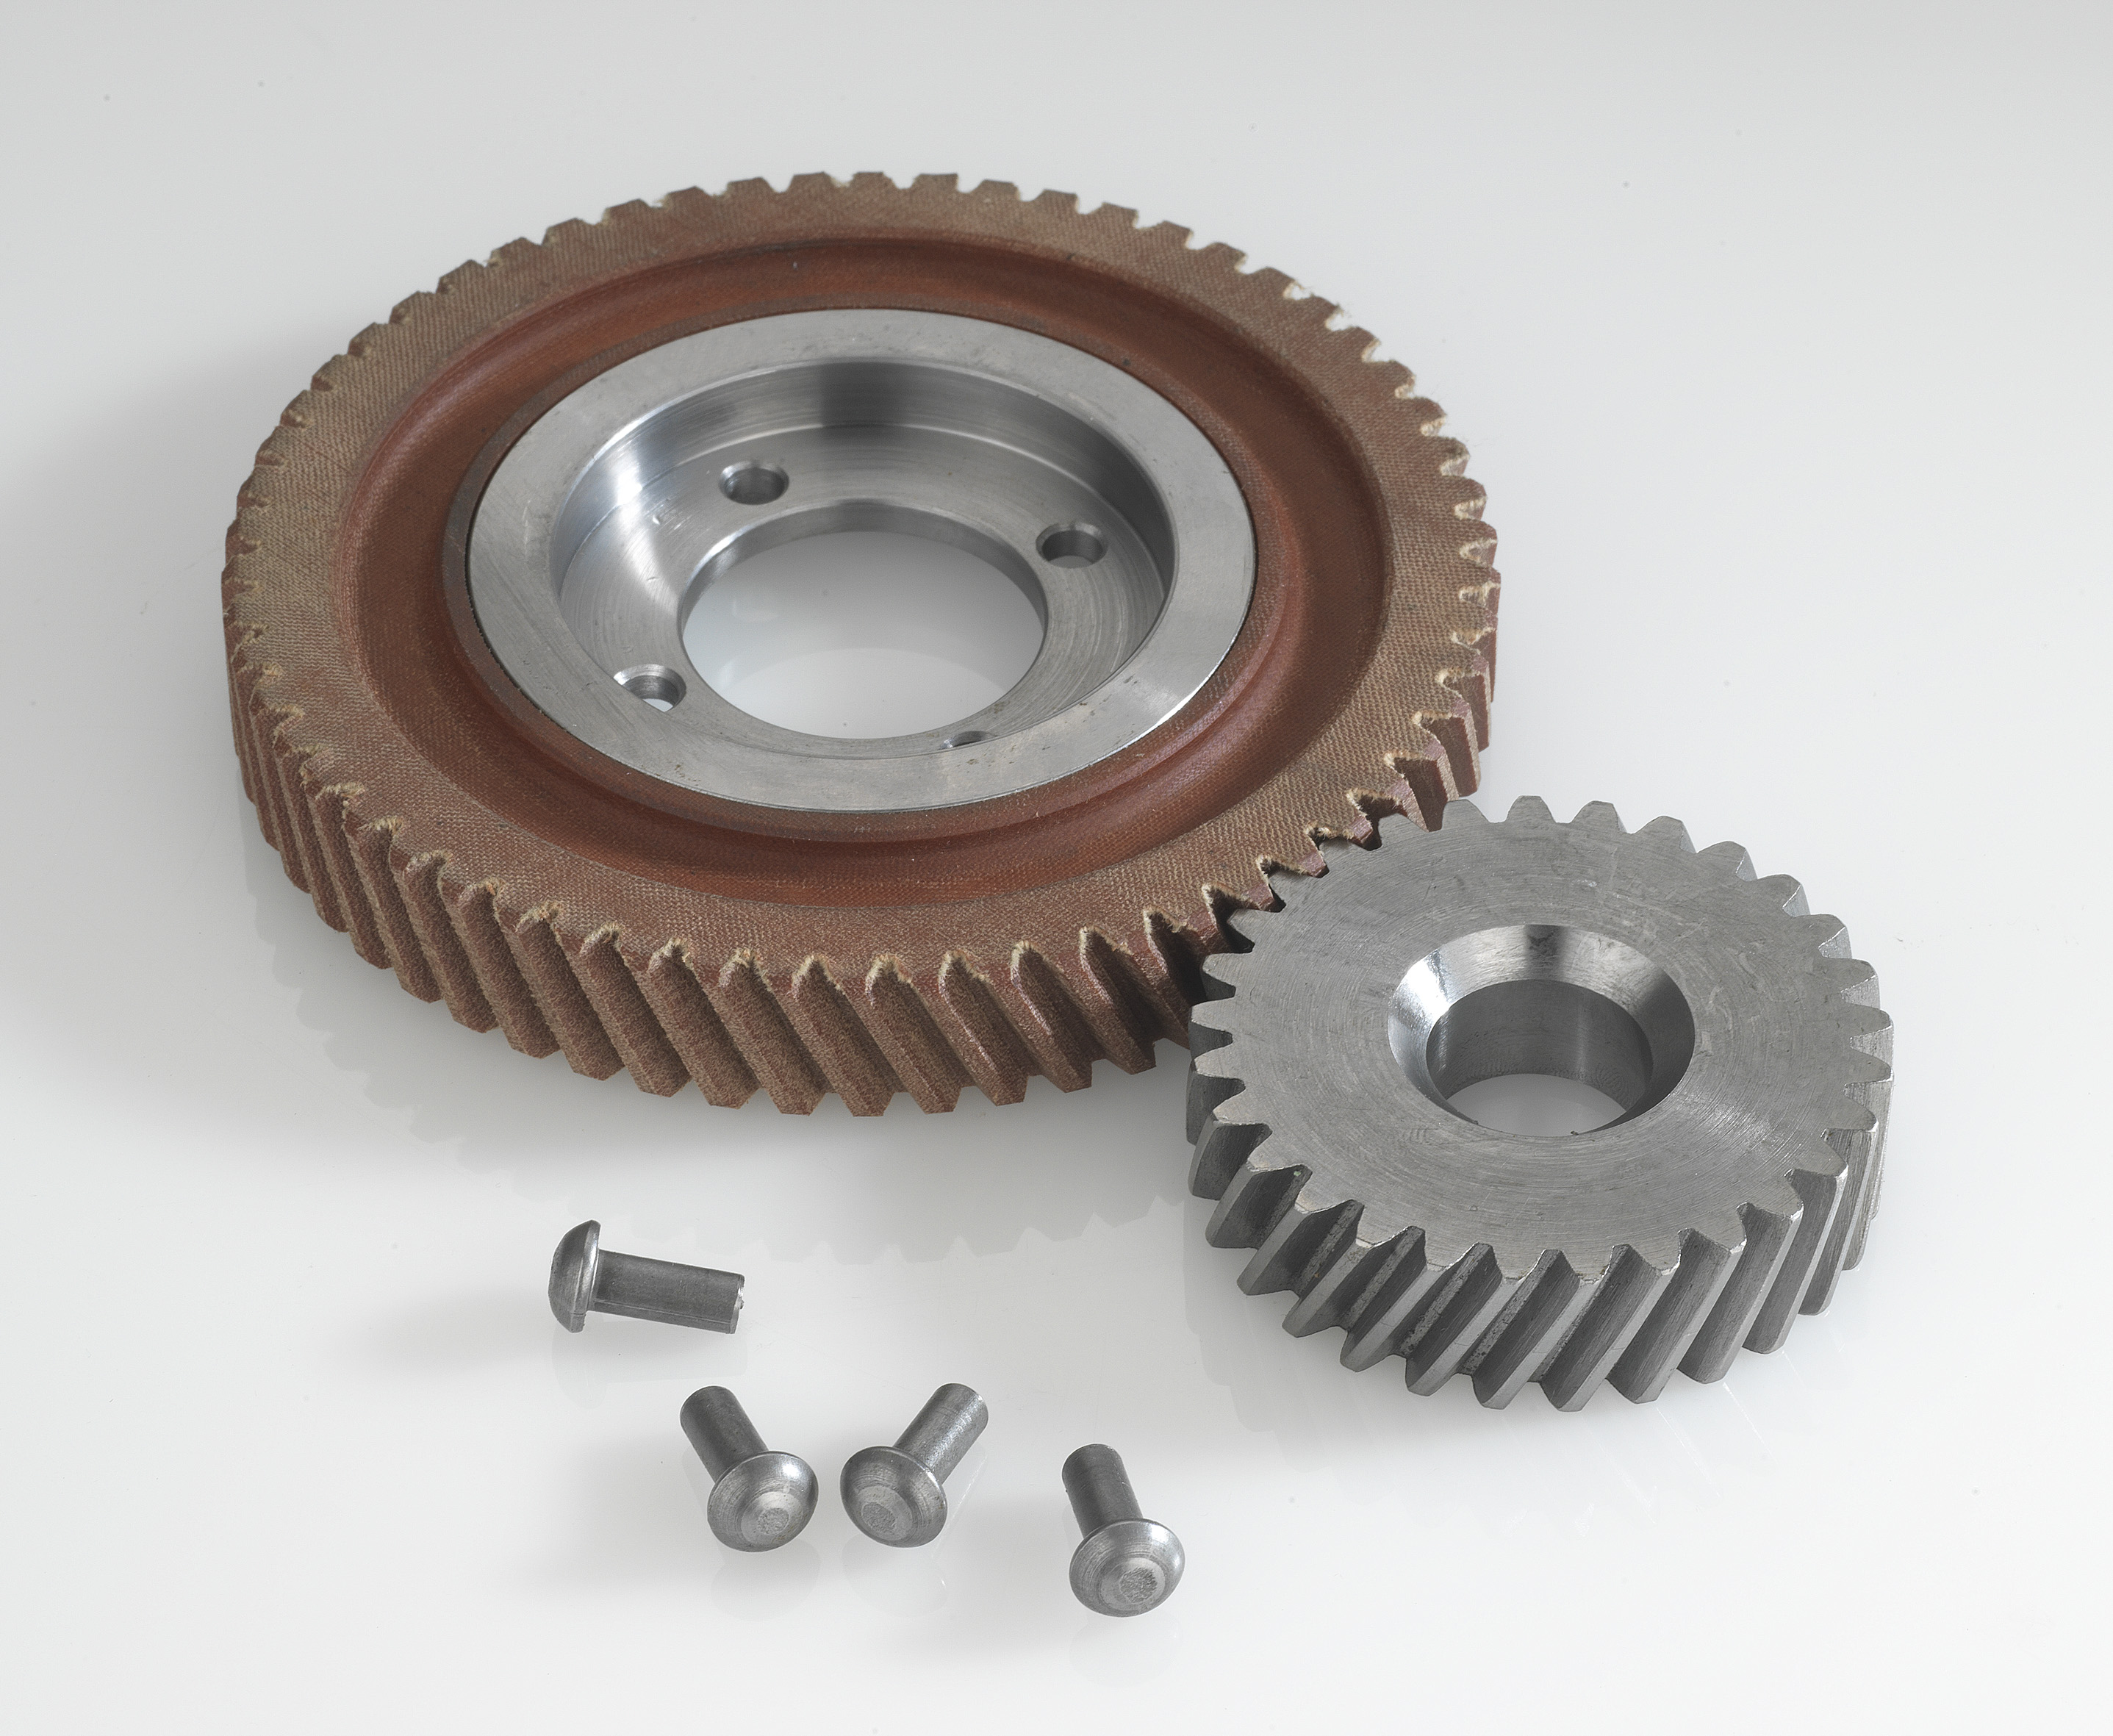 Arabella Timingwheel-camshaft Novotex and steel timing gear